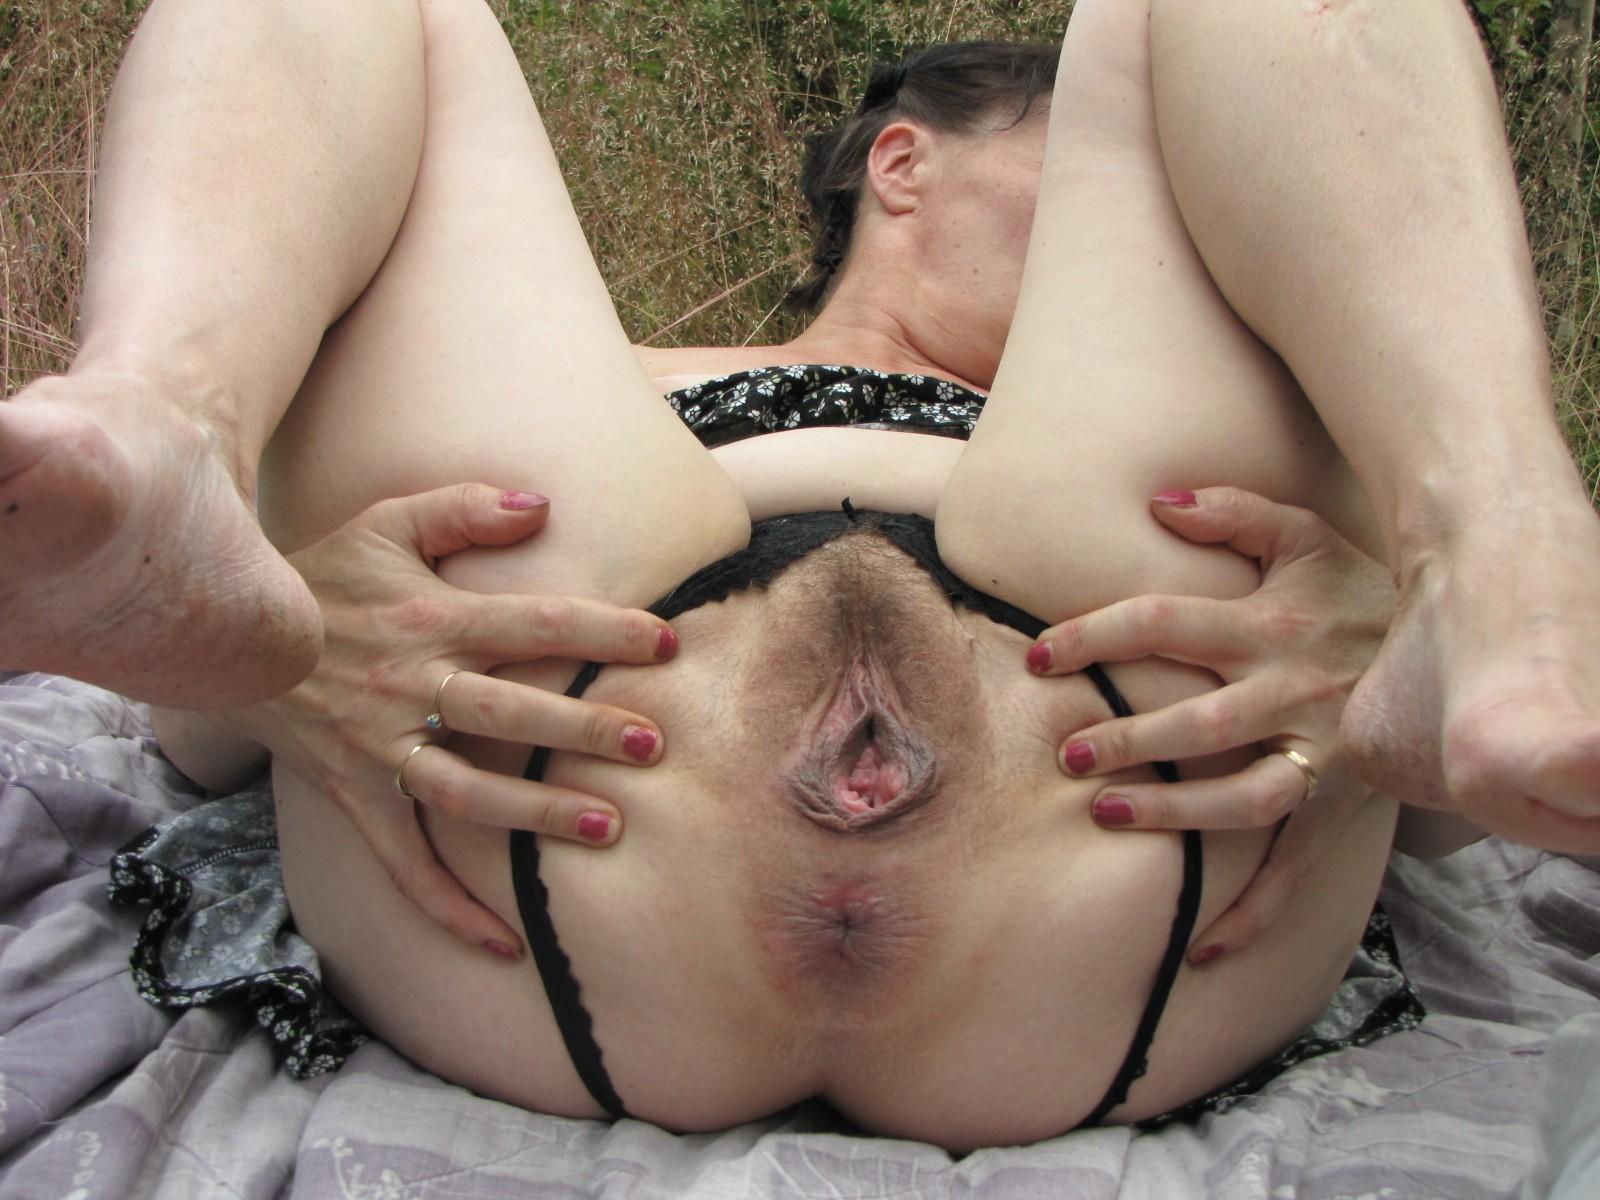 Horny wife naked apologise, but